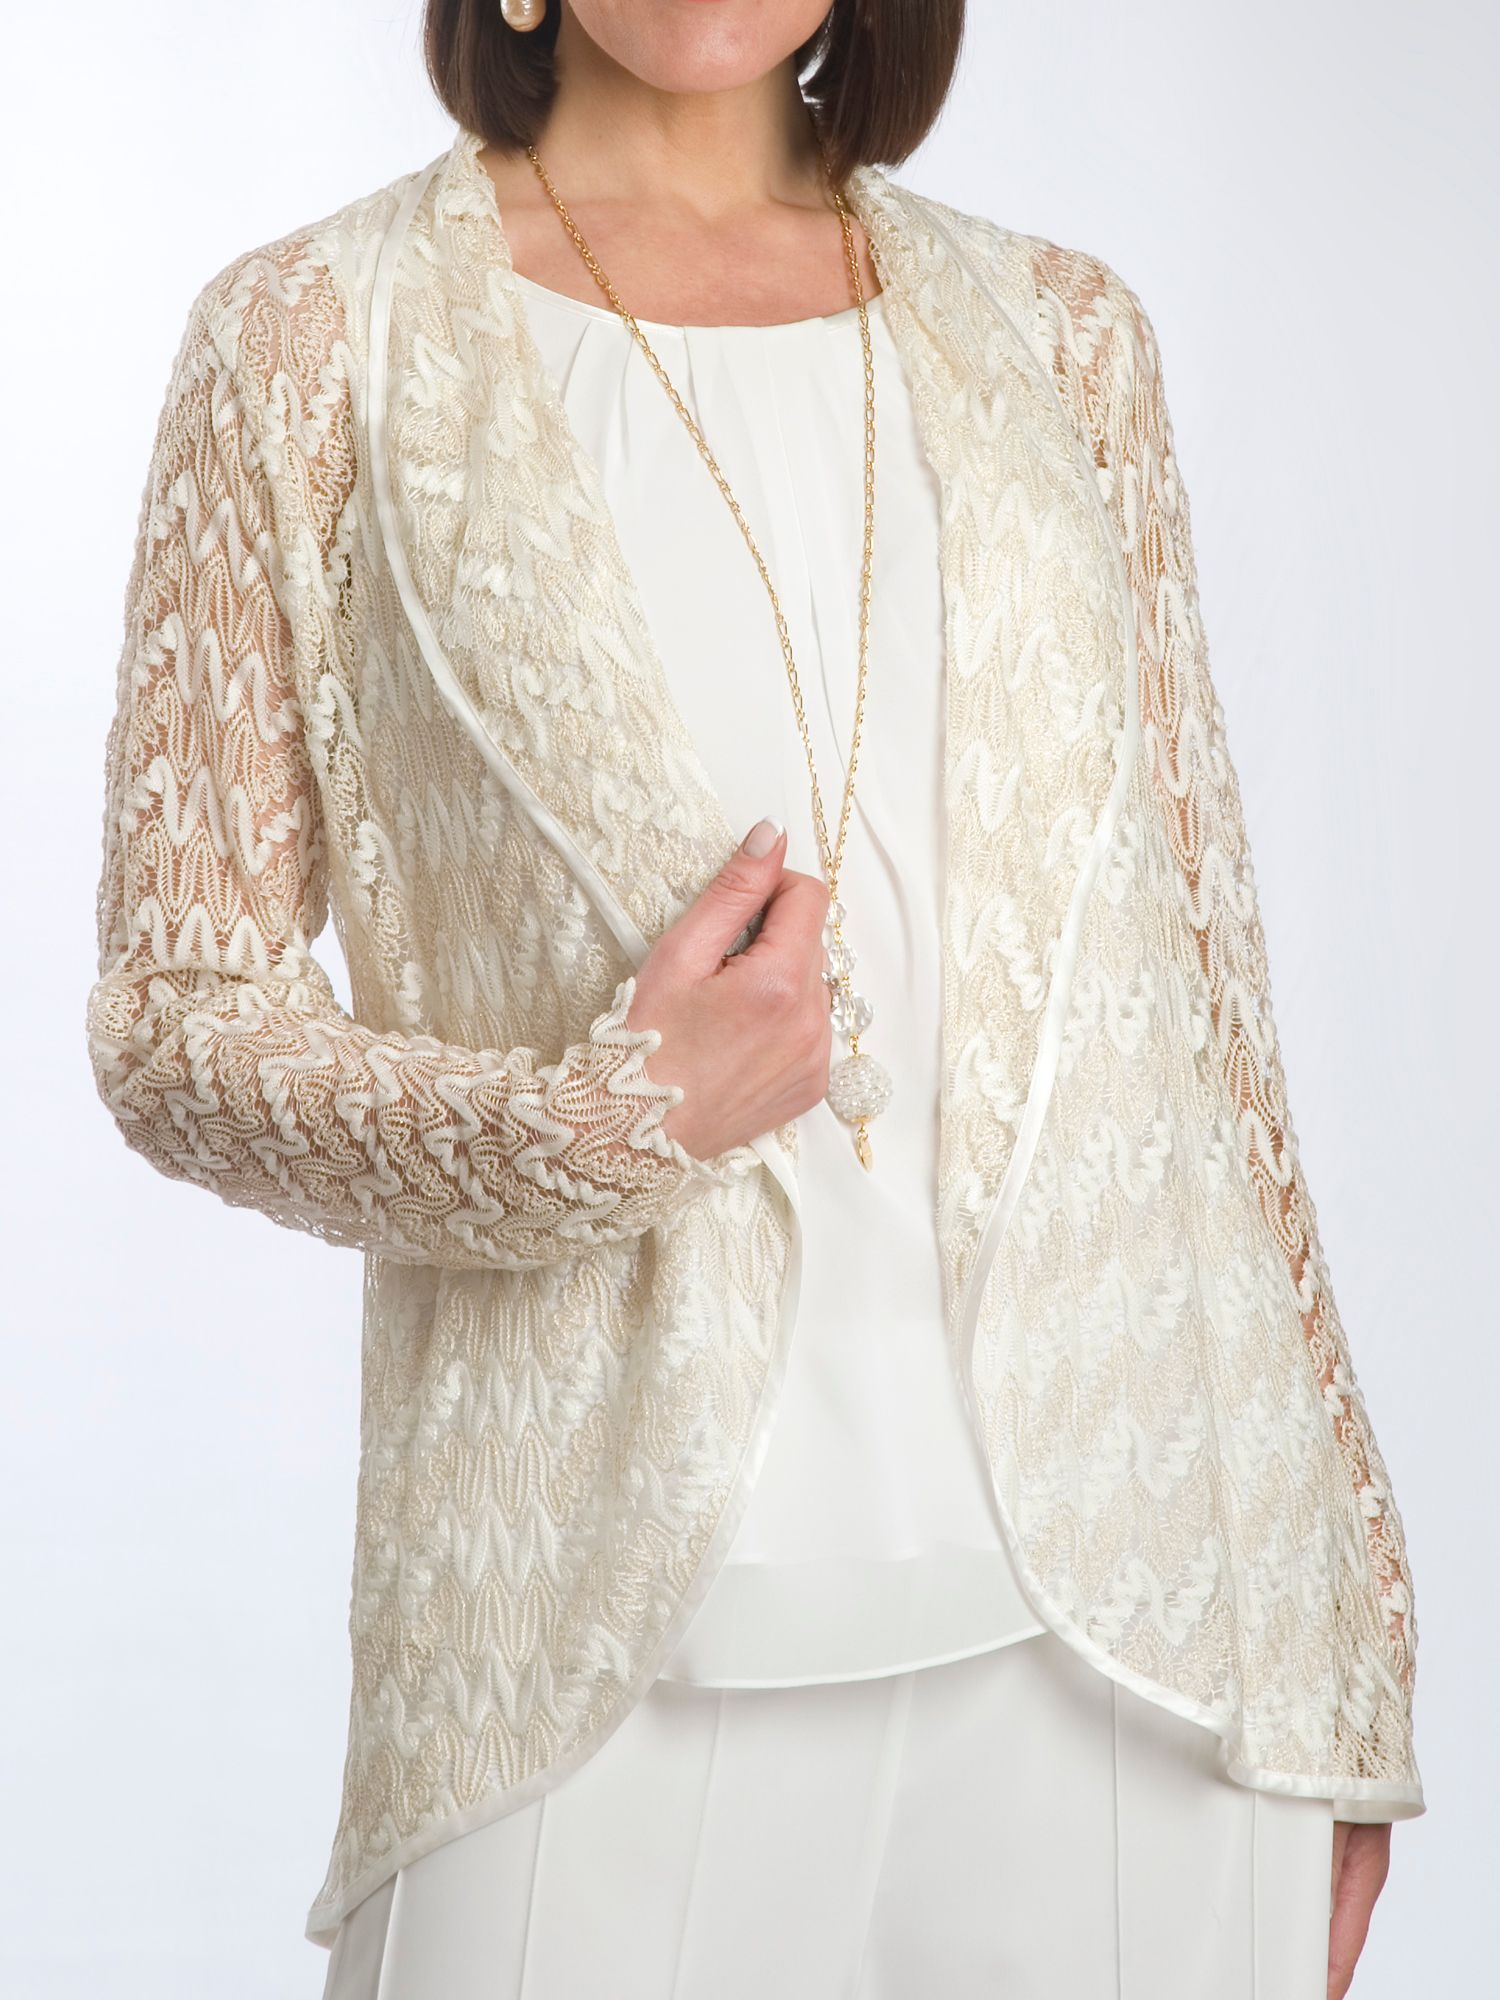 Lace shrug with satin trim